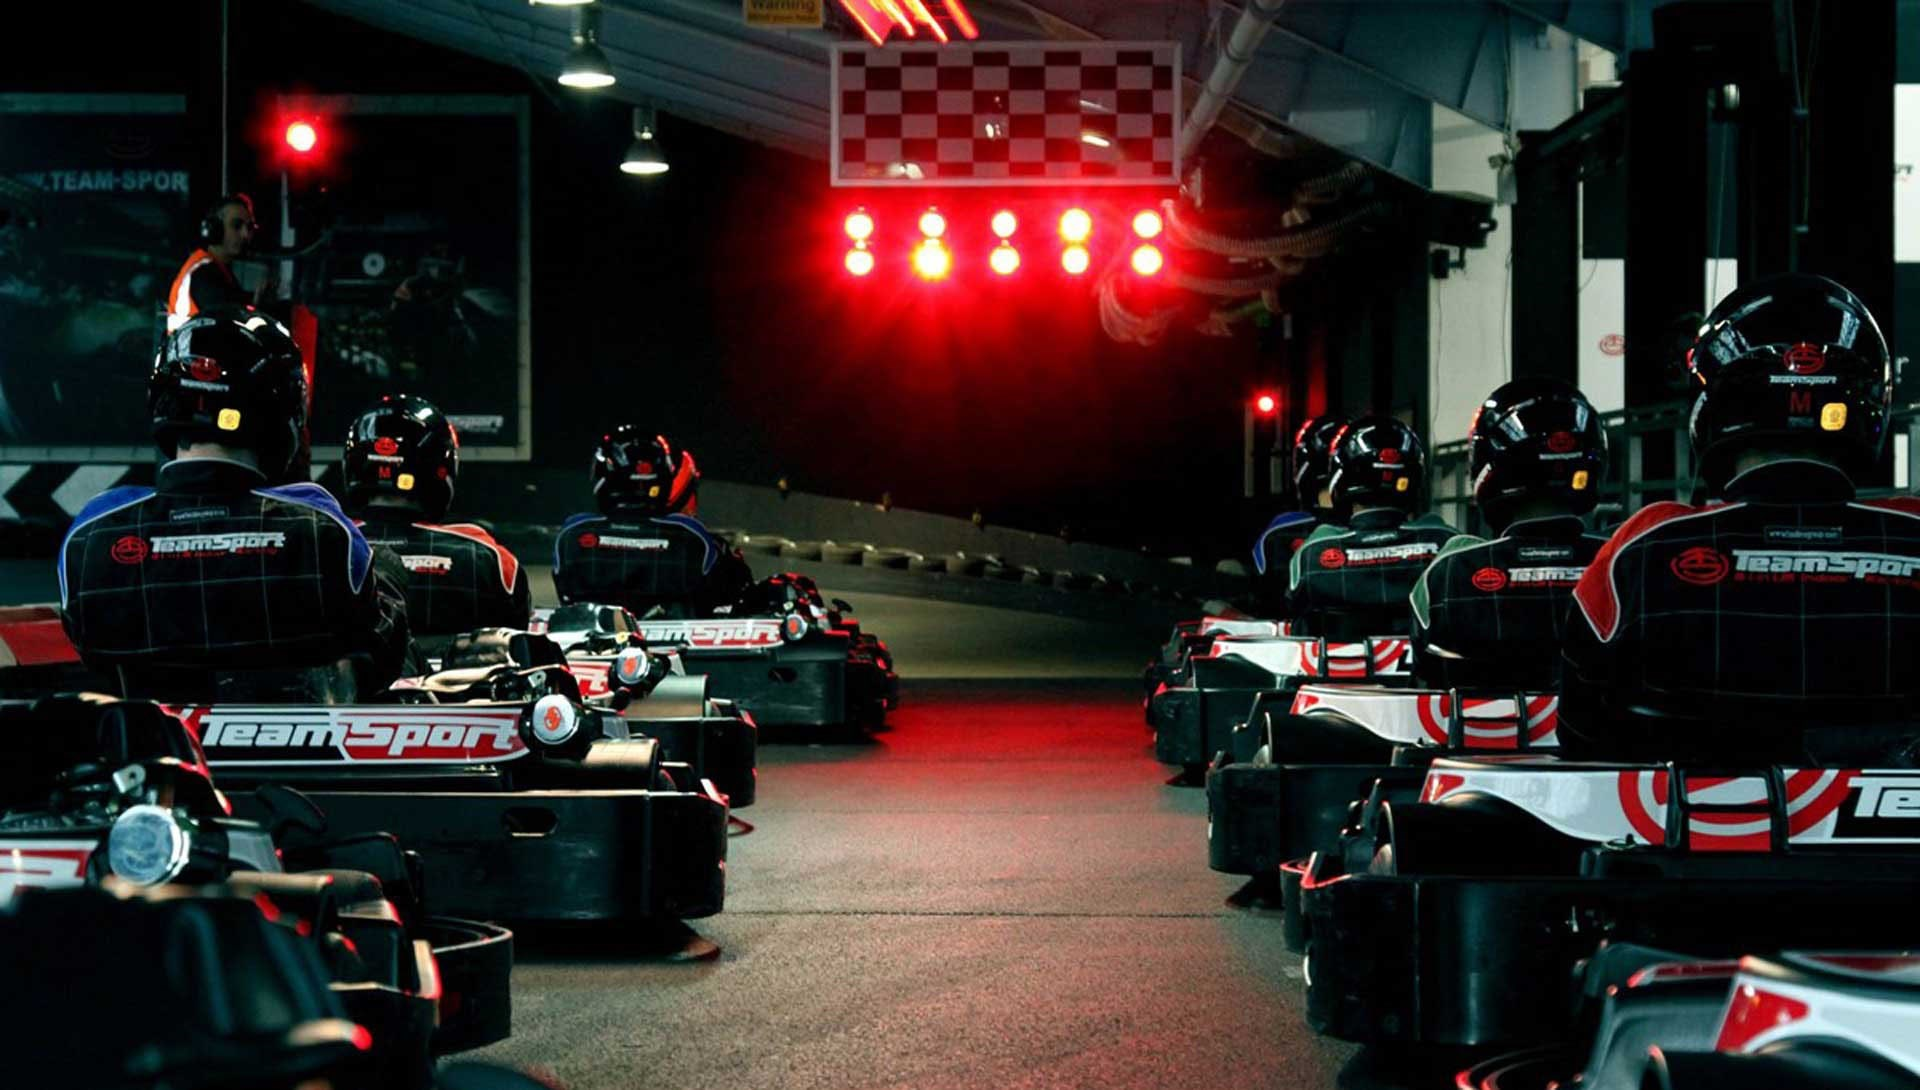 TeamSport_Gallery_Go_Karting_New_Track_1920x1090-min_4.jpg